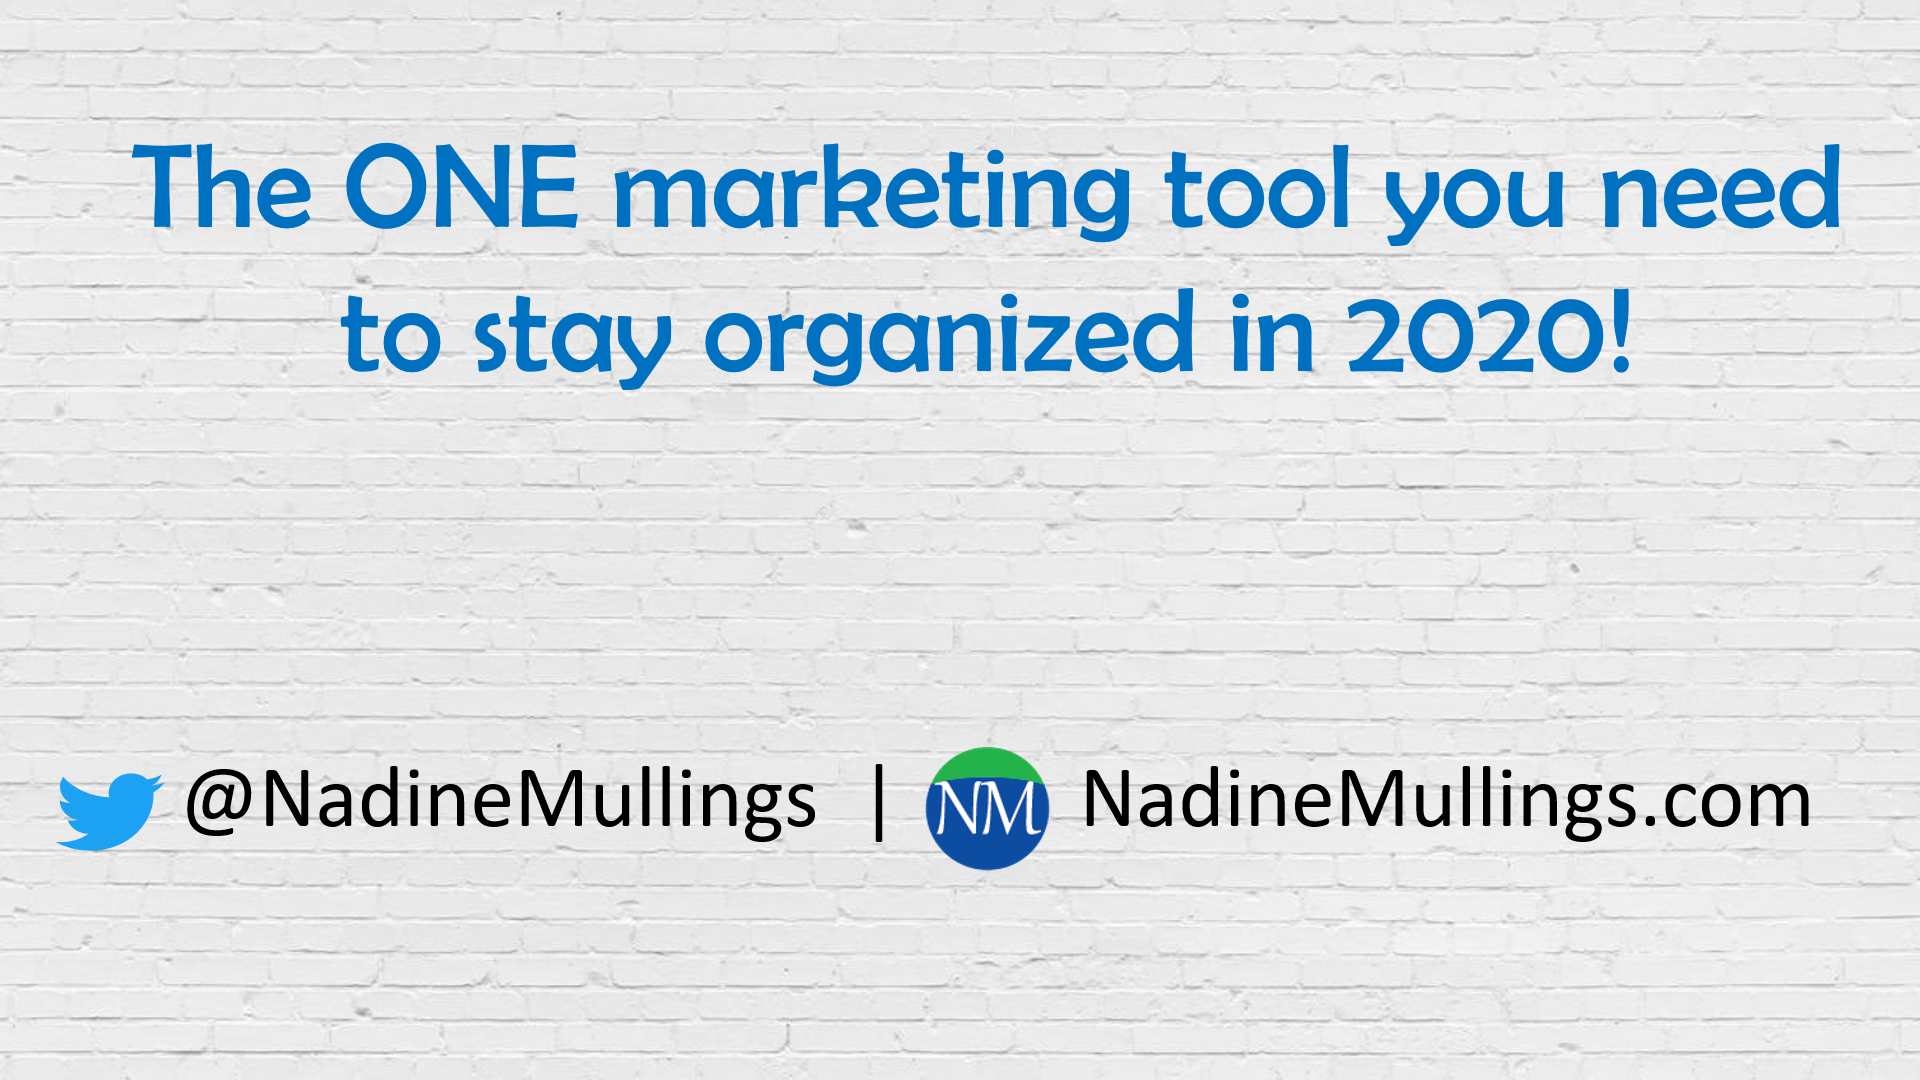 THE ONE MARKETING TOOL YOU NEED TO STAY ORGANIZED IN 2020!